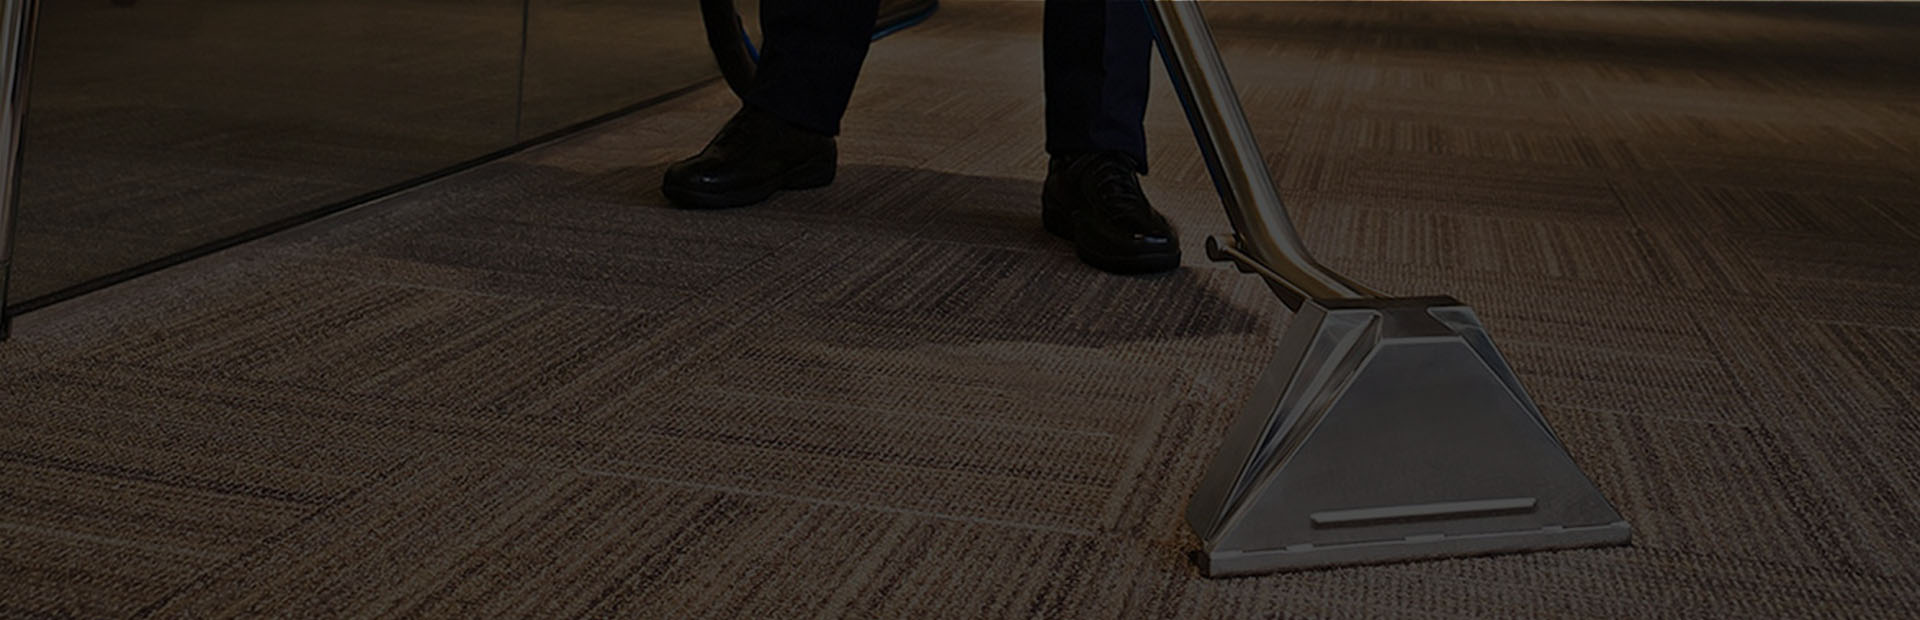 Carpet Cleaning Martinez